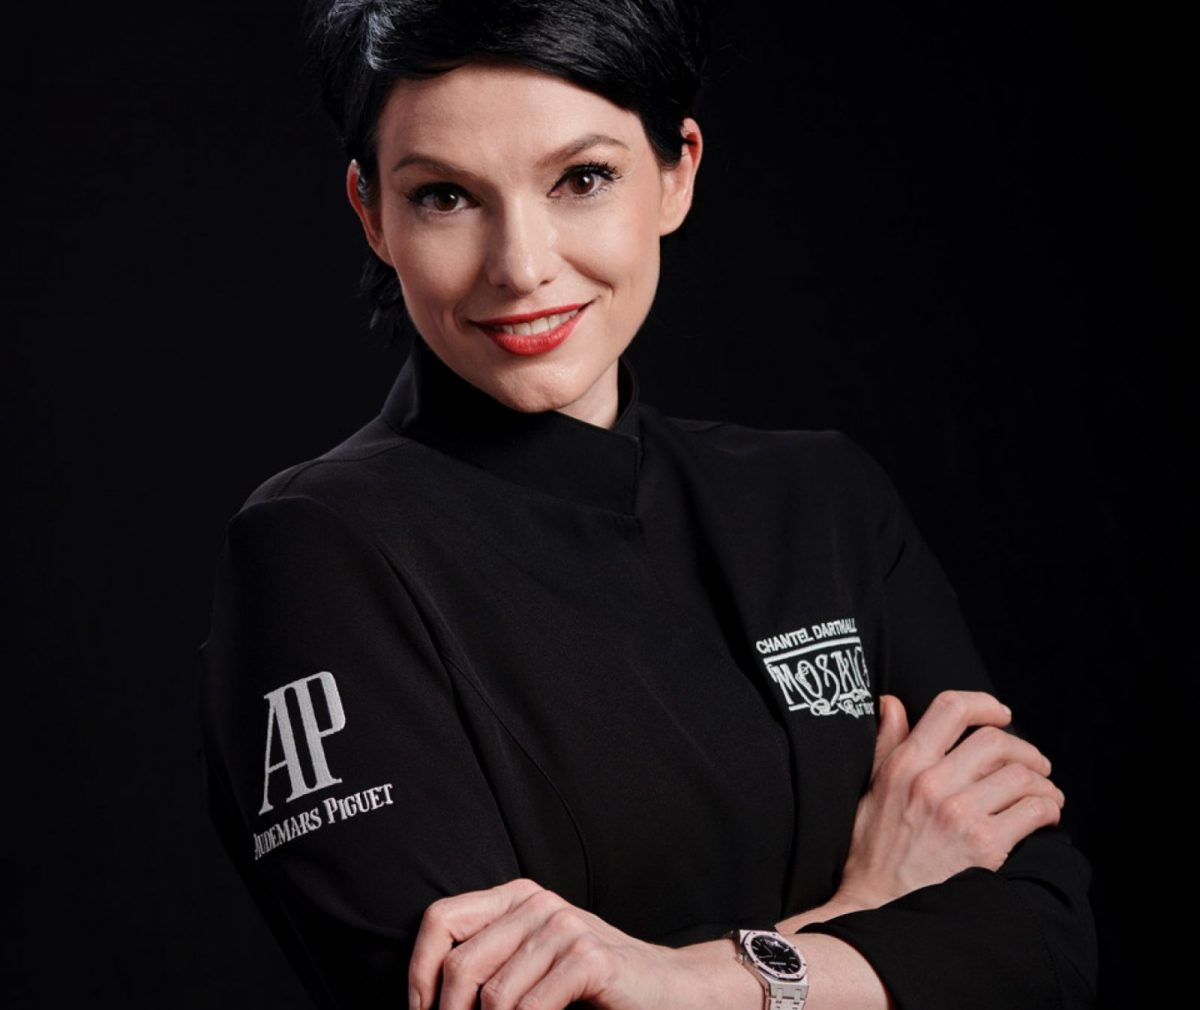 Chef Chantel Dartnall of Restaurant Mosaic